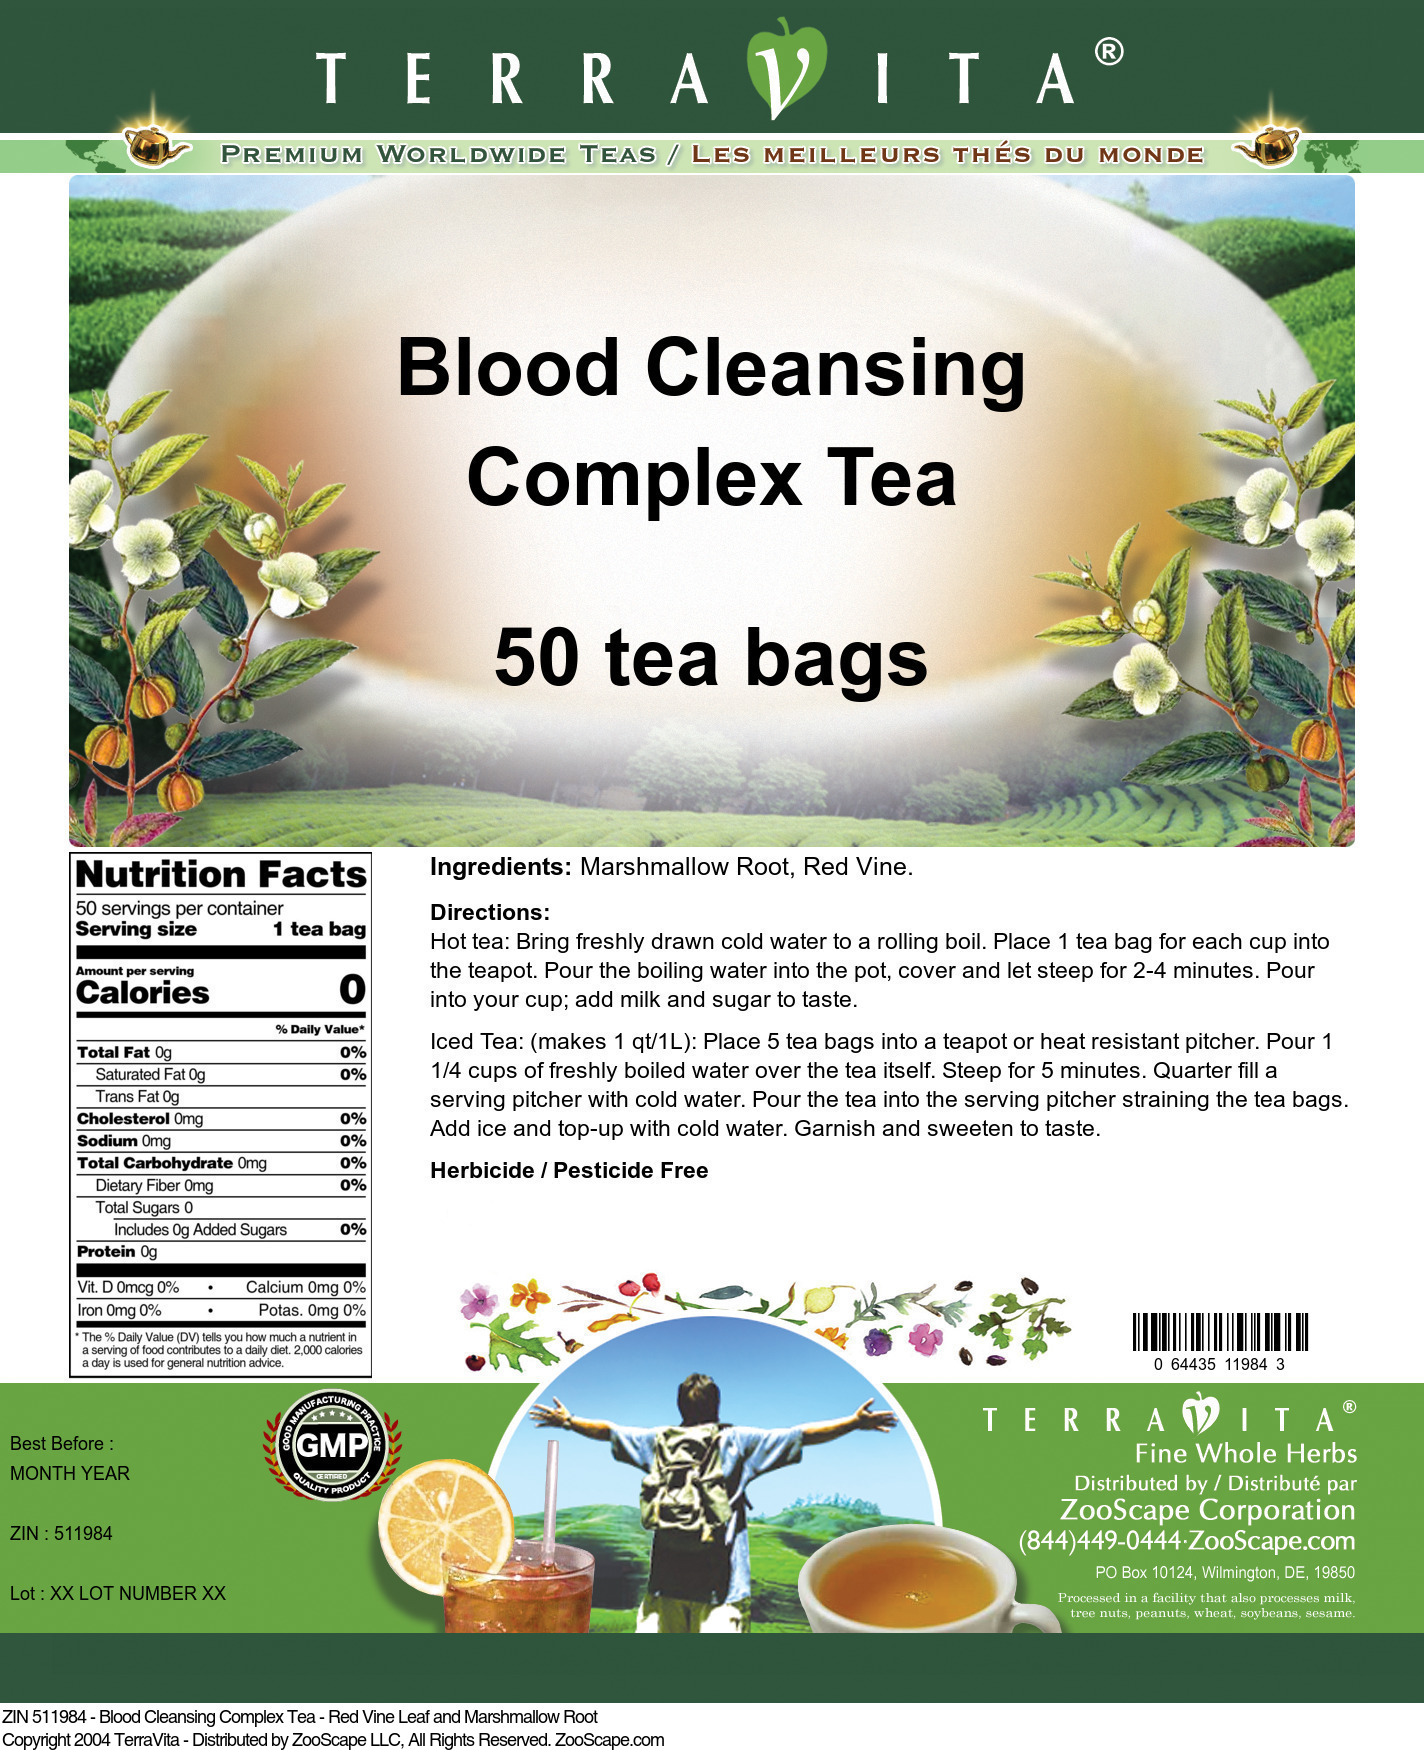 Blood Cleansing Complex